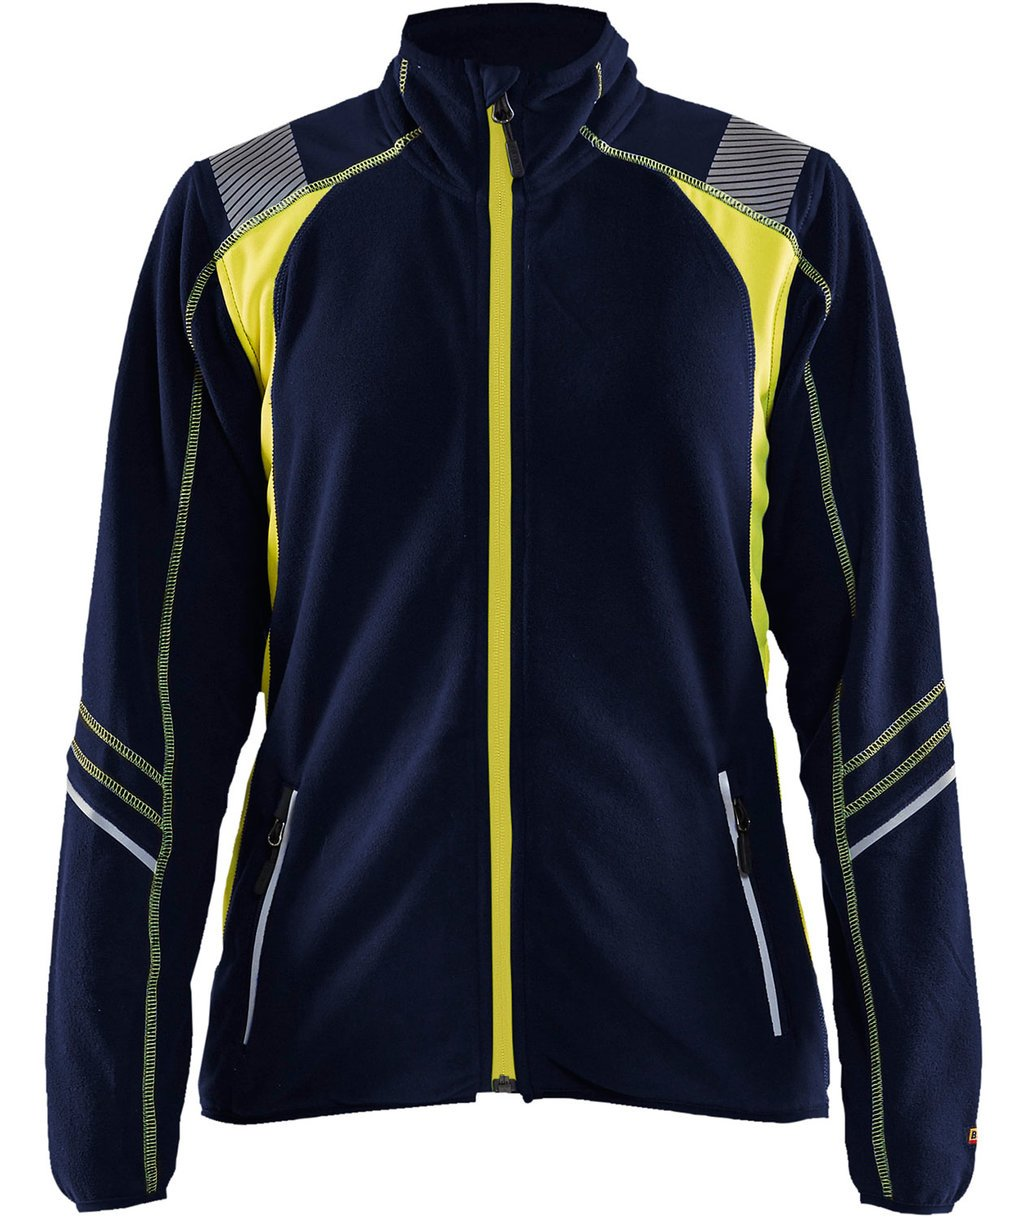 Blåkläder women's fleece jacket, Marine Blue/Yellow